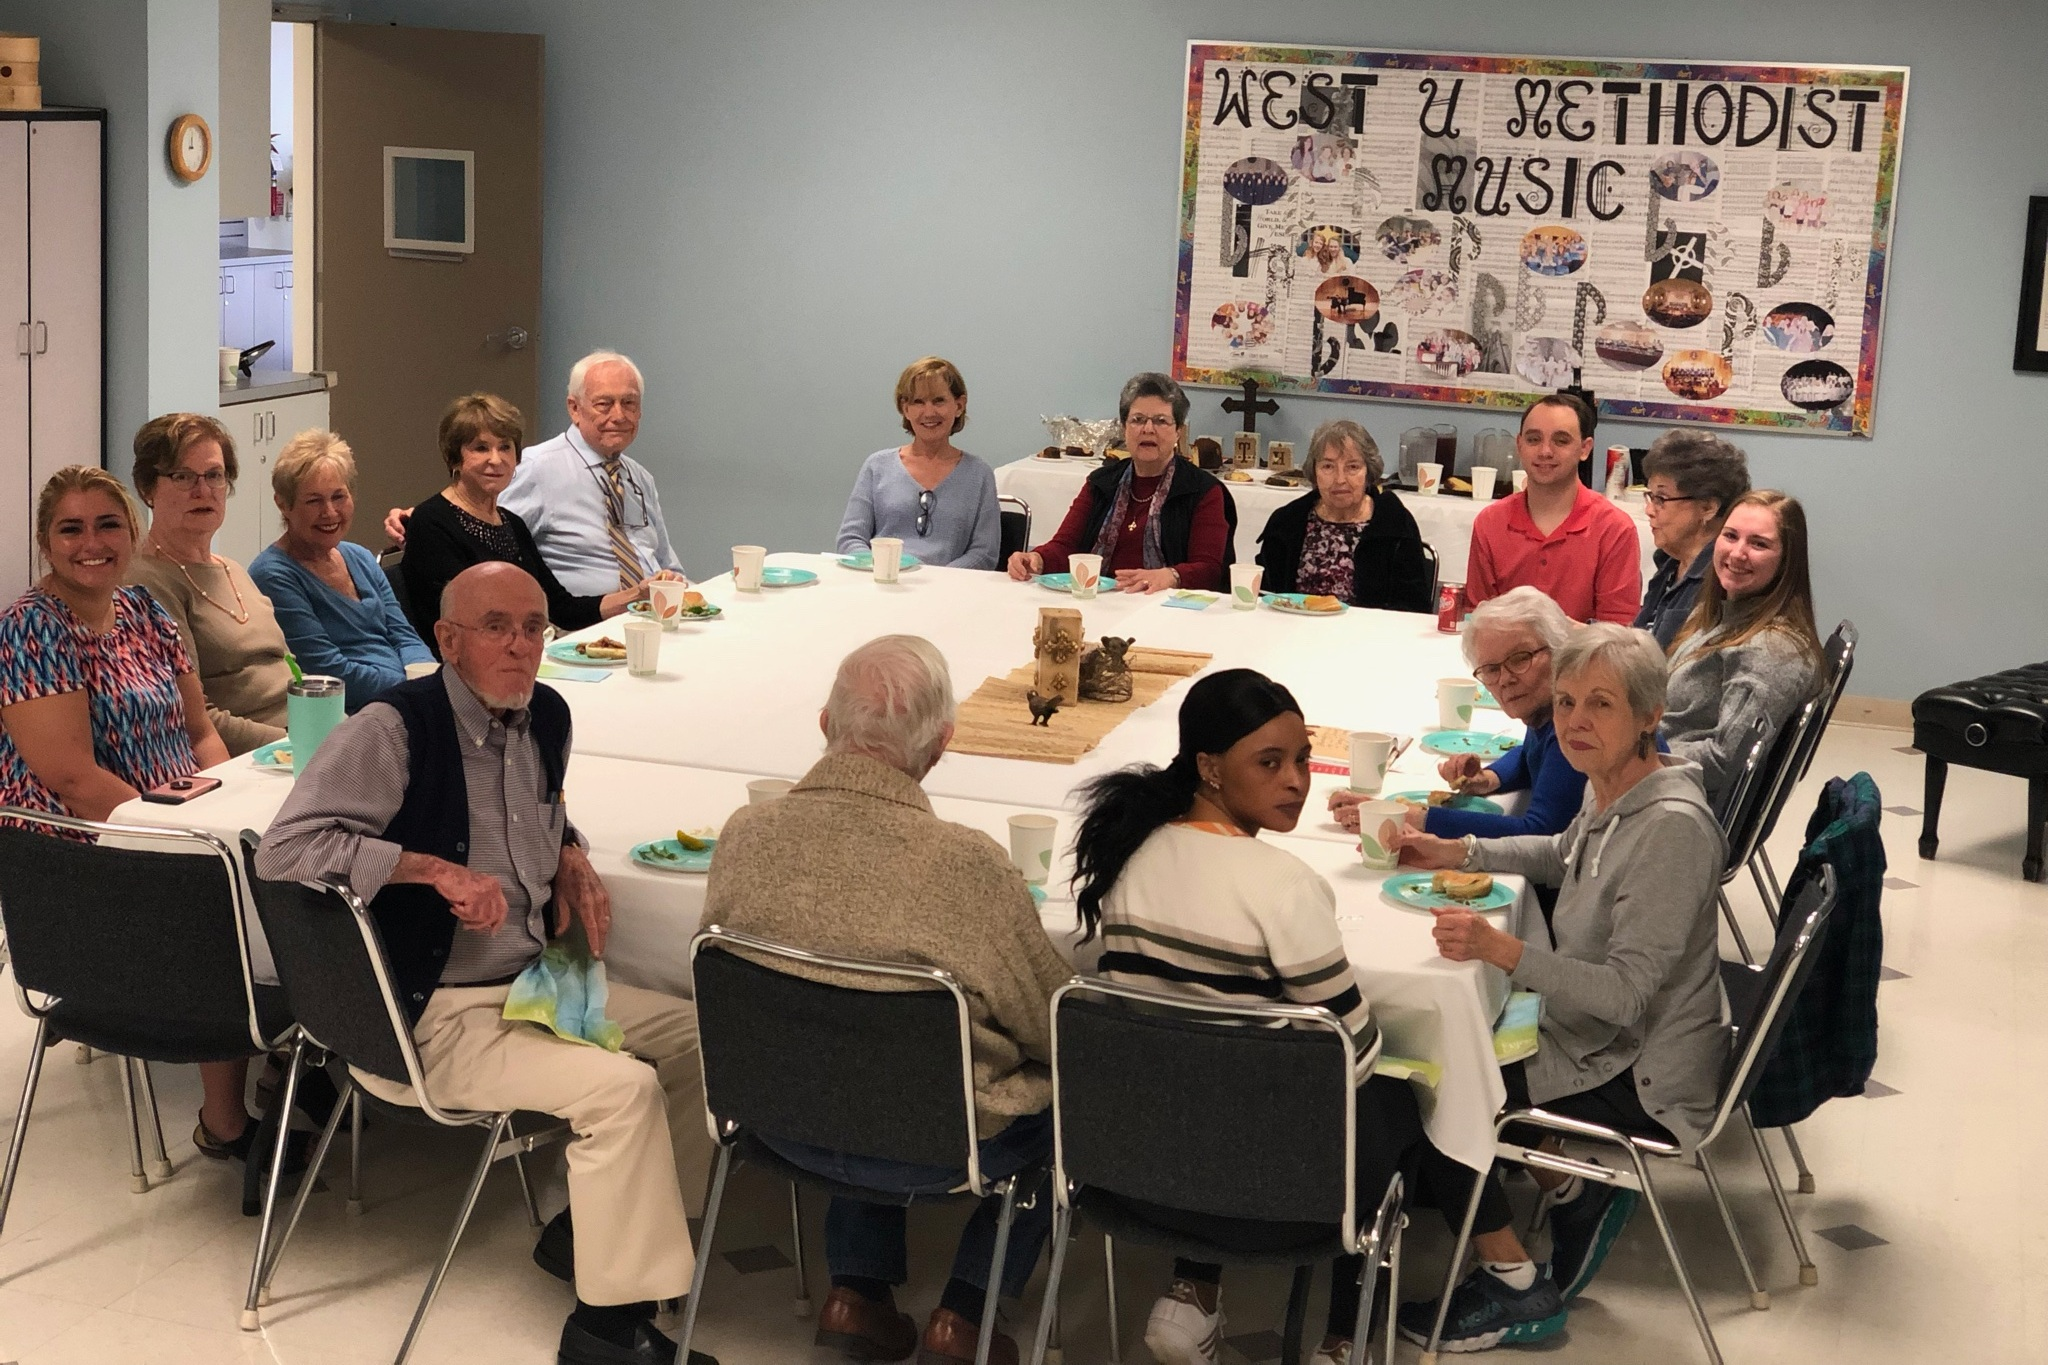 Senior Adult Ministry - Senior adults meet every Wednesday during the spring and fall for a Fellowship Lunch at 10am in the Choir Room. They enjoy various activities and a meal together. Once a month, the group goes out for lunch during the meeting period. Everyone is welcome and invited to these events!